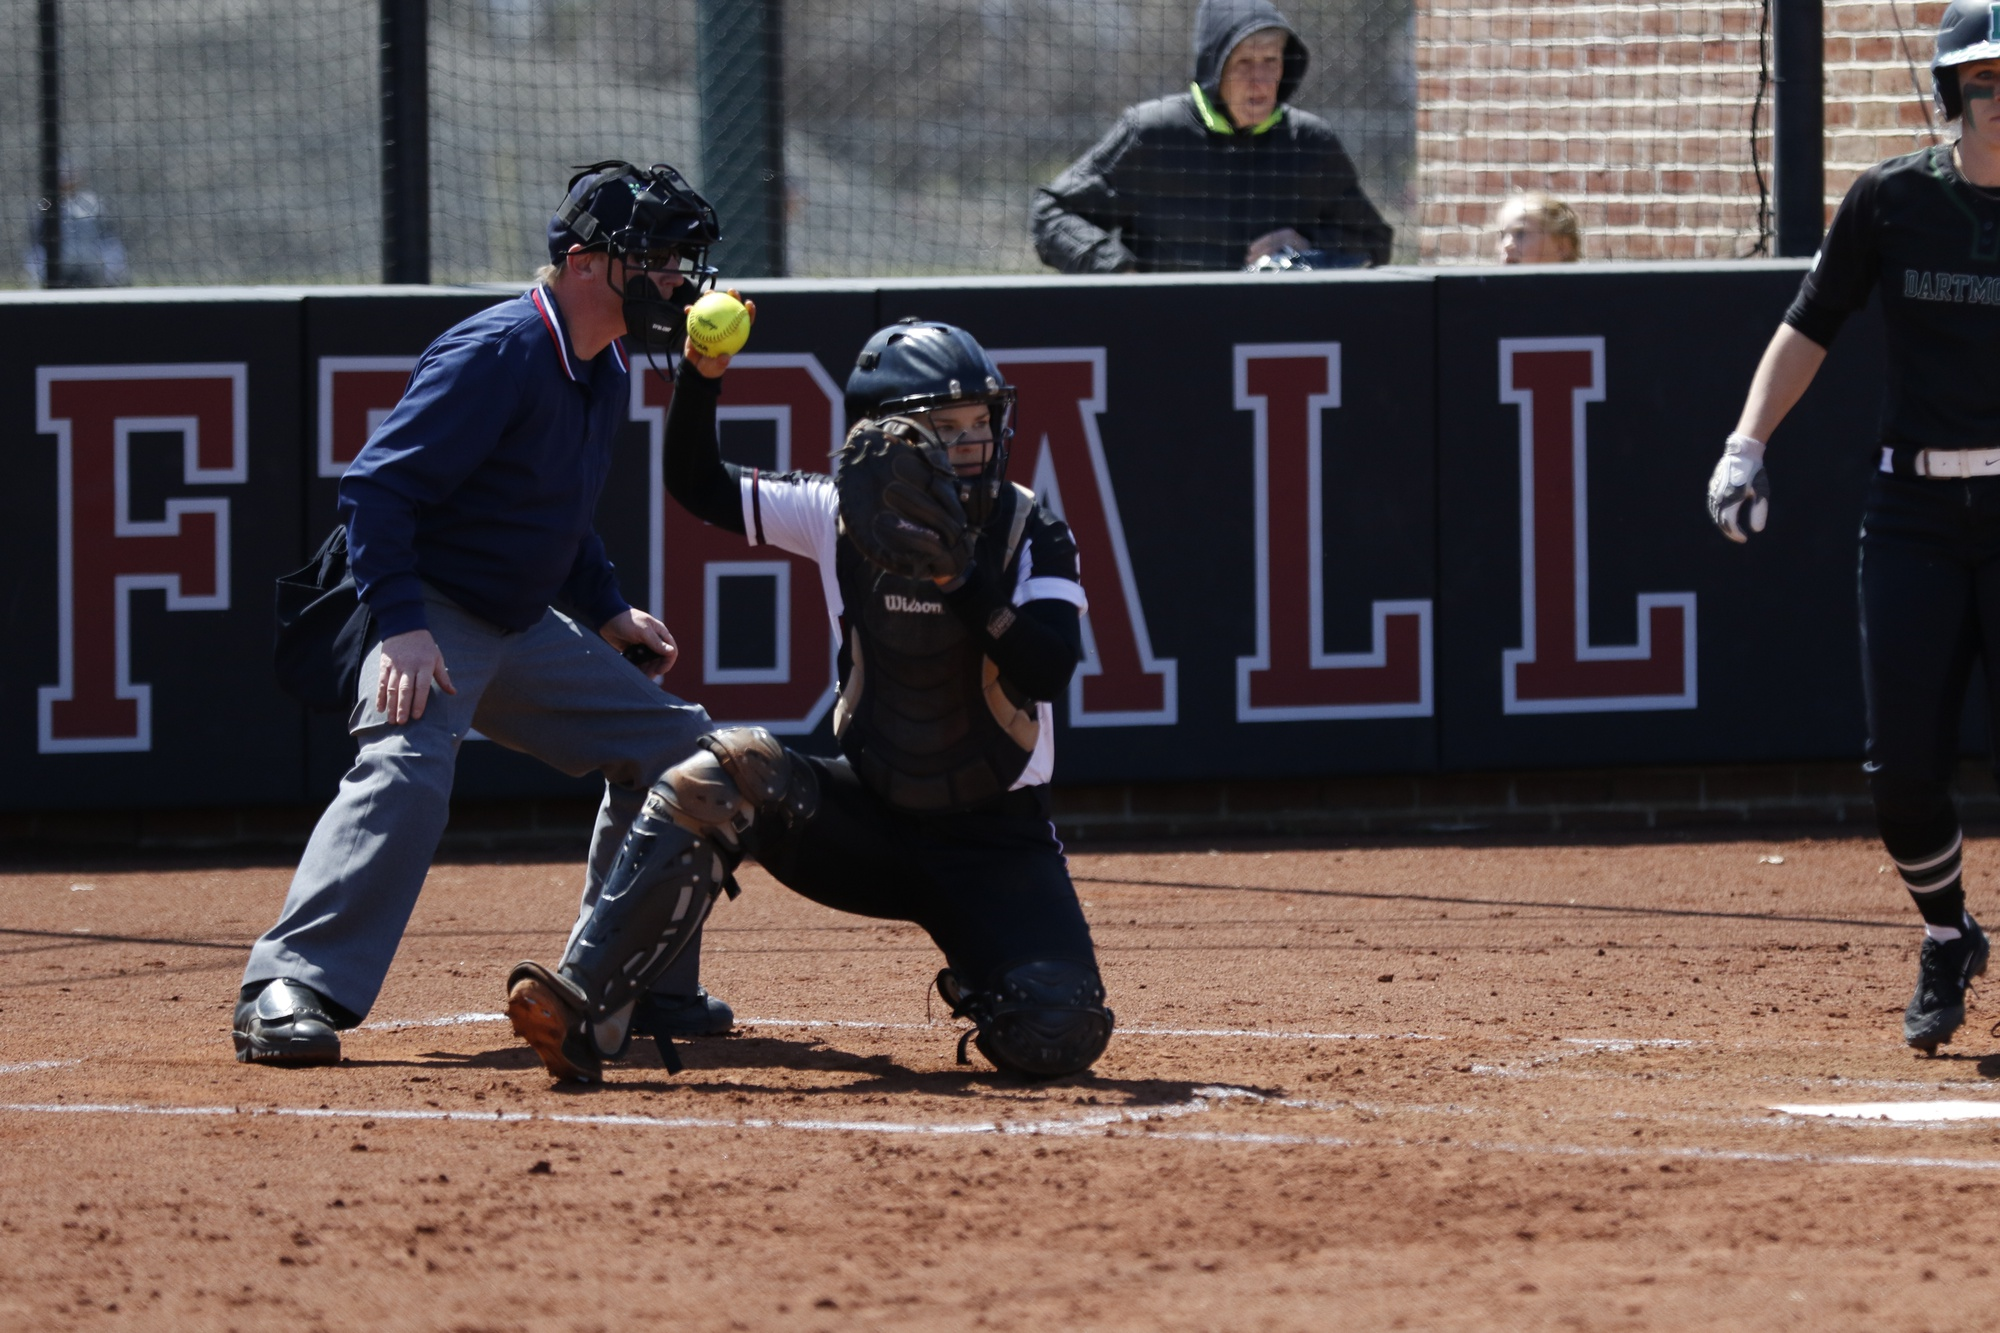 Junior catcher Lindey Knieb tosses the ball back to the pitcher against Dartmouth last April.